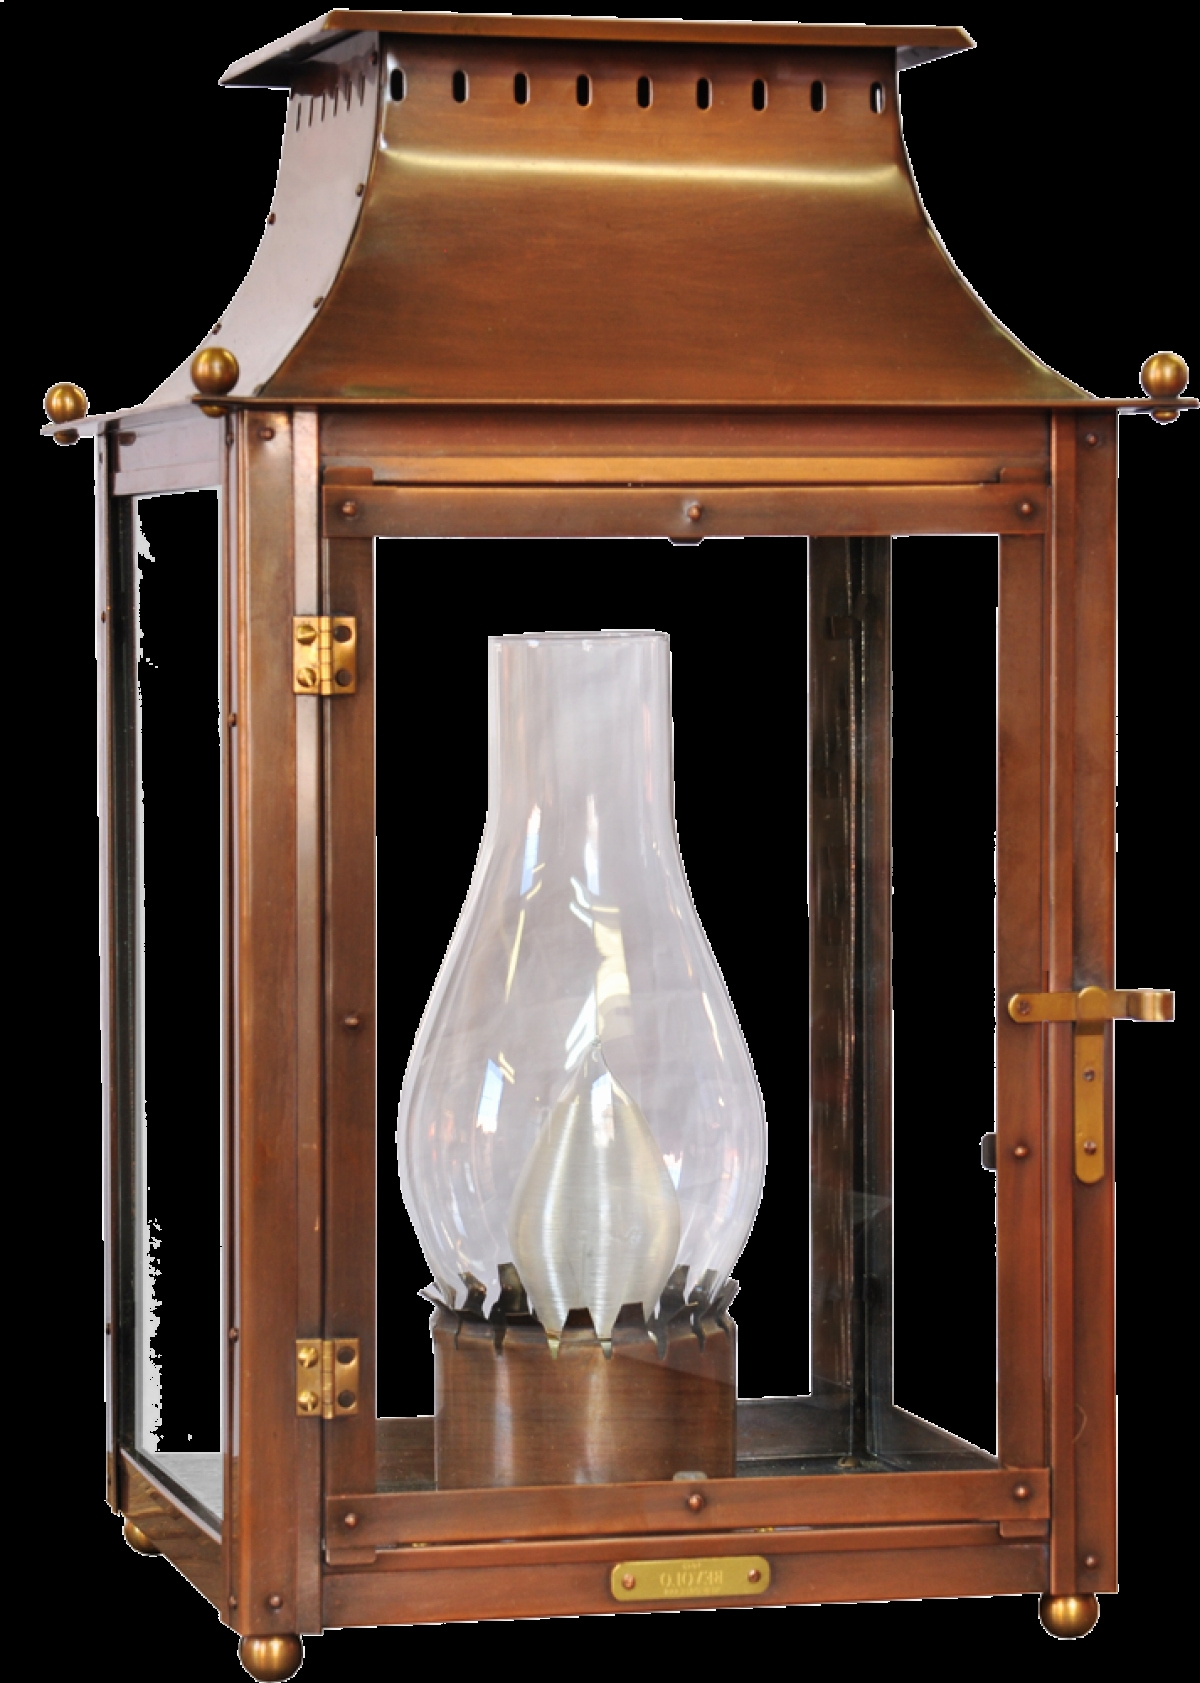 Best And Newest Copper Outdoor Electric Lanterns Pertaining To Outdoor Electric Lantern Lights – Outdoor Lighting Ideas (View 9 of 20)